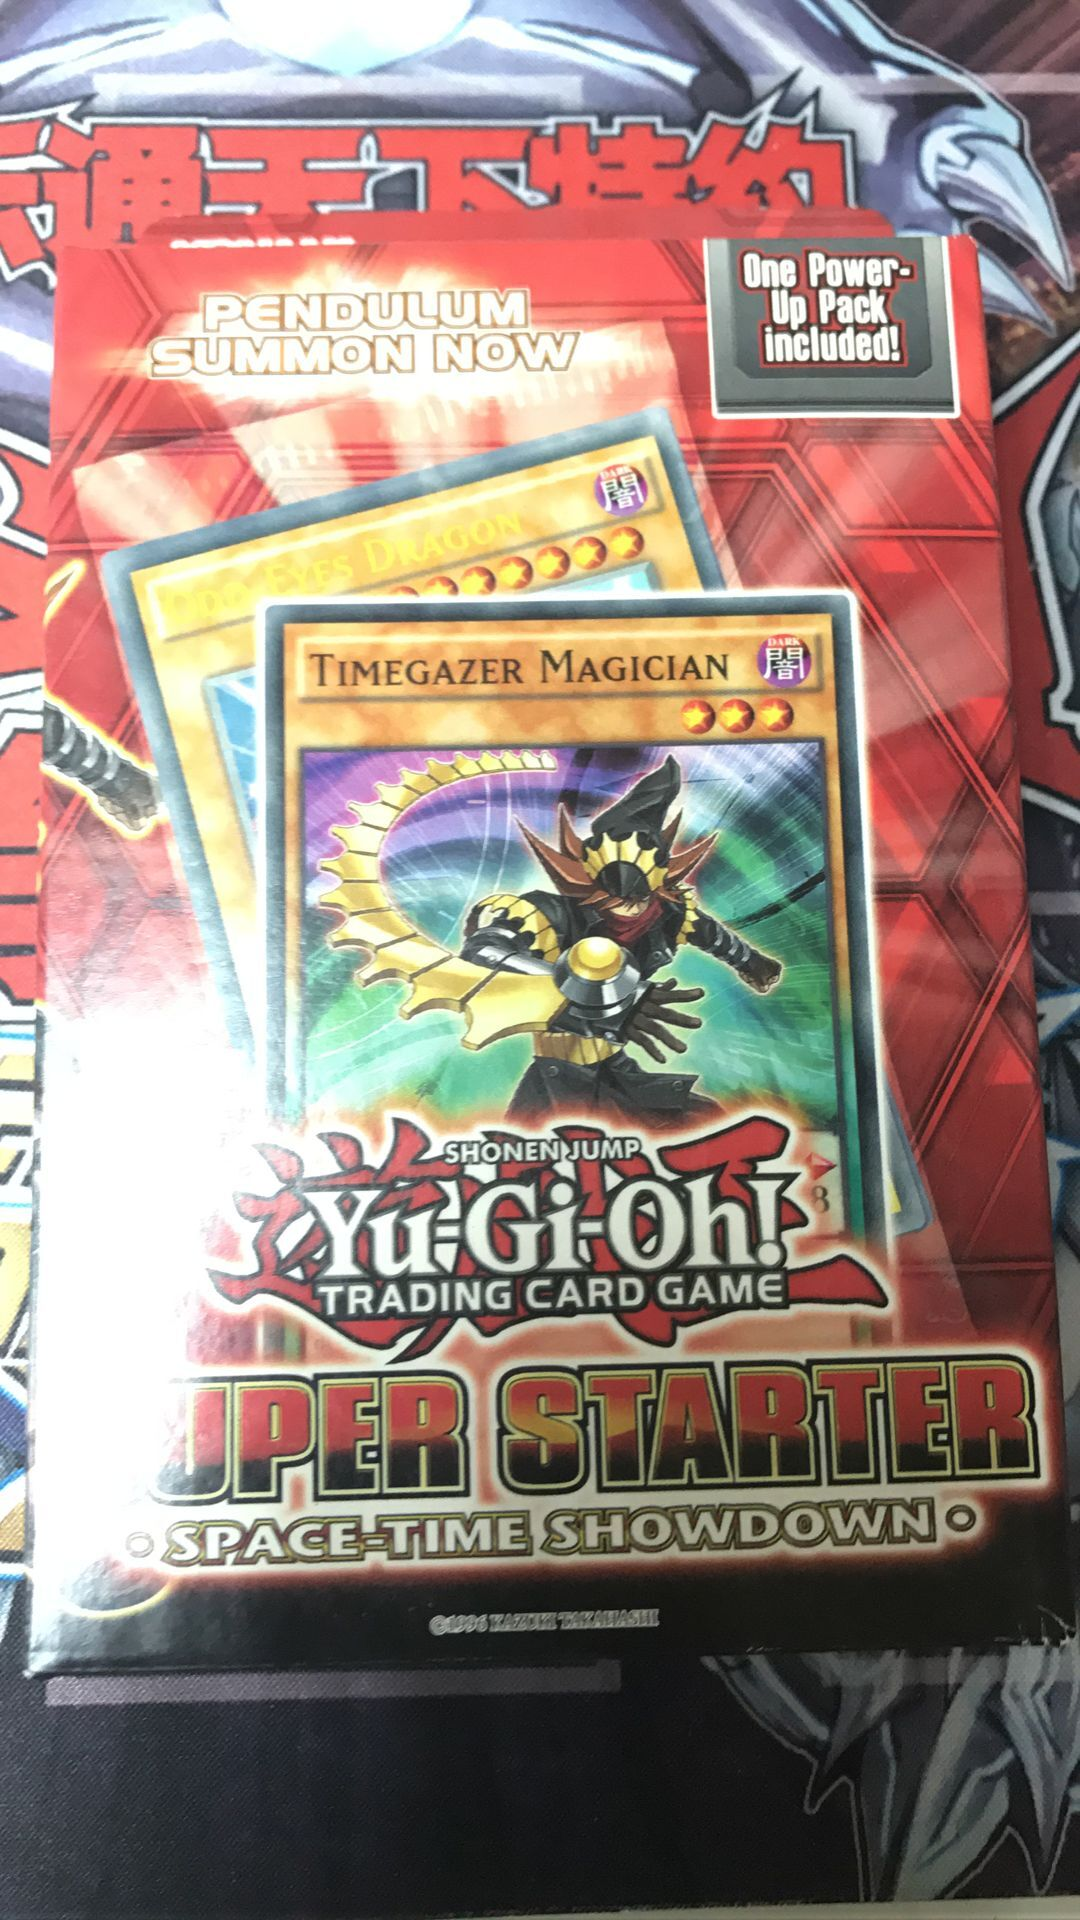 Yugioh 2014 Trading Card Game Super Starter Deck SPACE-TIME SHOWDOWN